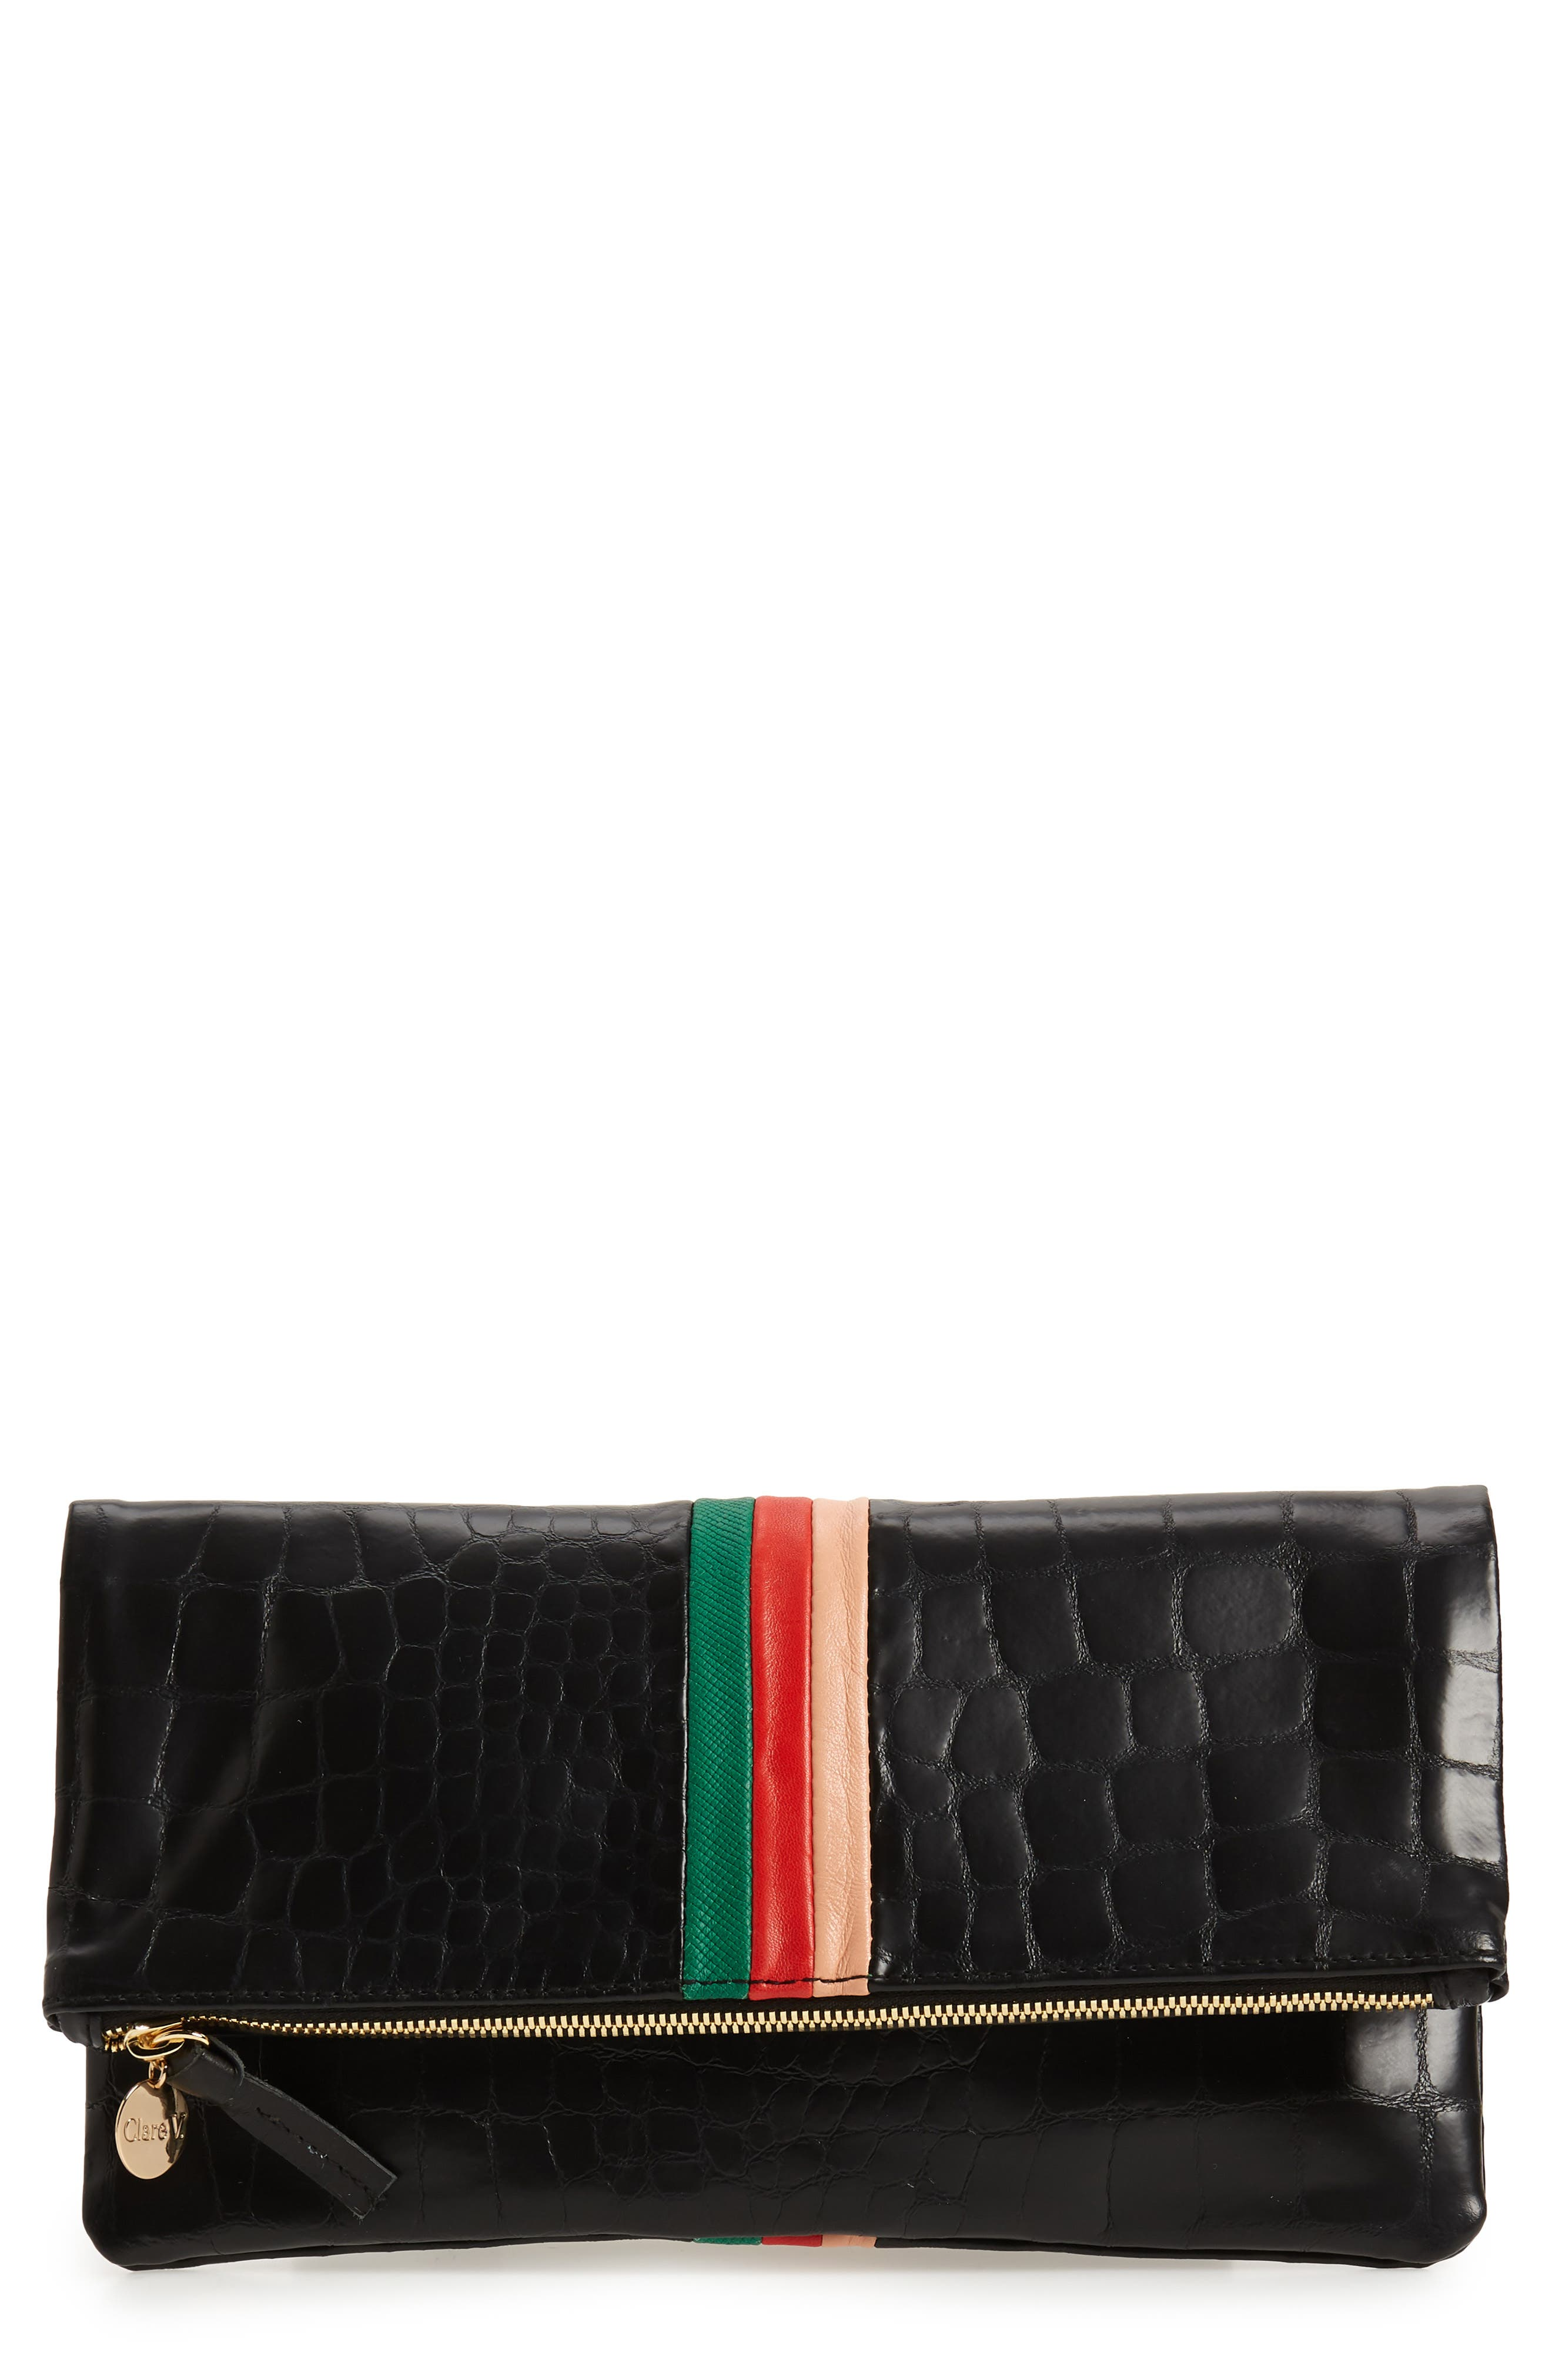 Croc Embossed Leather Foldover Clutch,                             Main thumbnail 1, color,